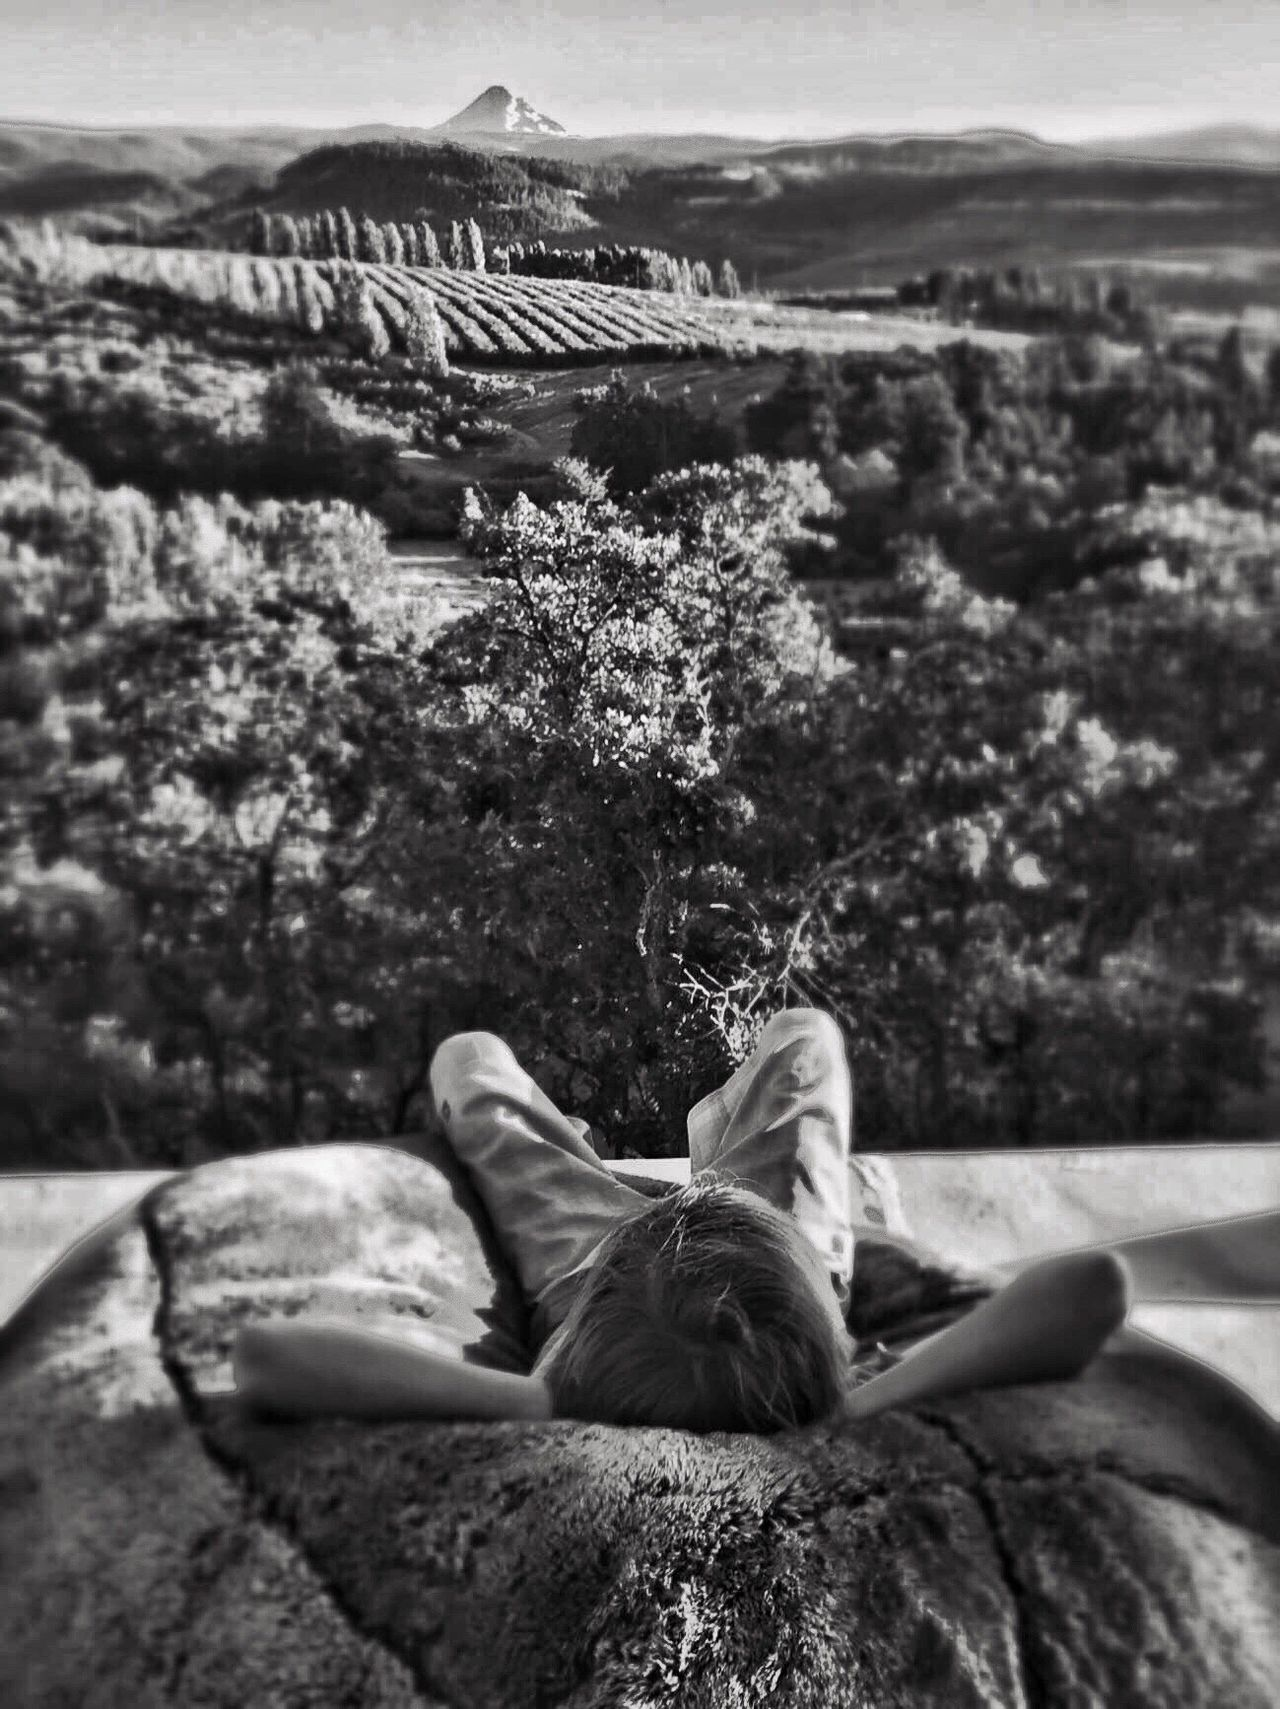 Enjoying Life The Great Outdoors - 2015 EyeEm Awards Black And White Photography The Traveler - 2015 EyeEm Awards Mt Hood